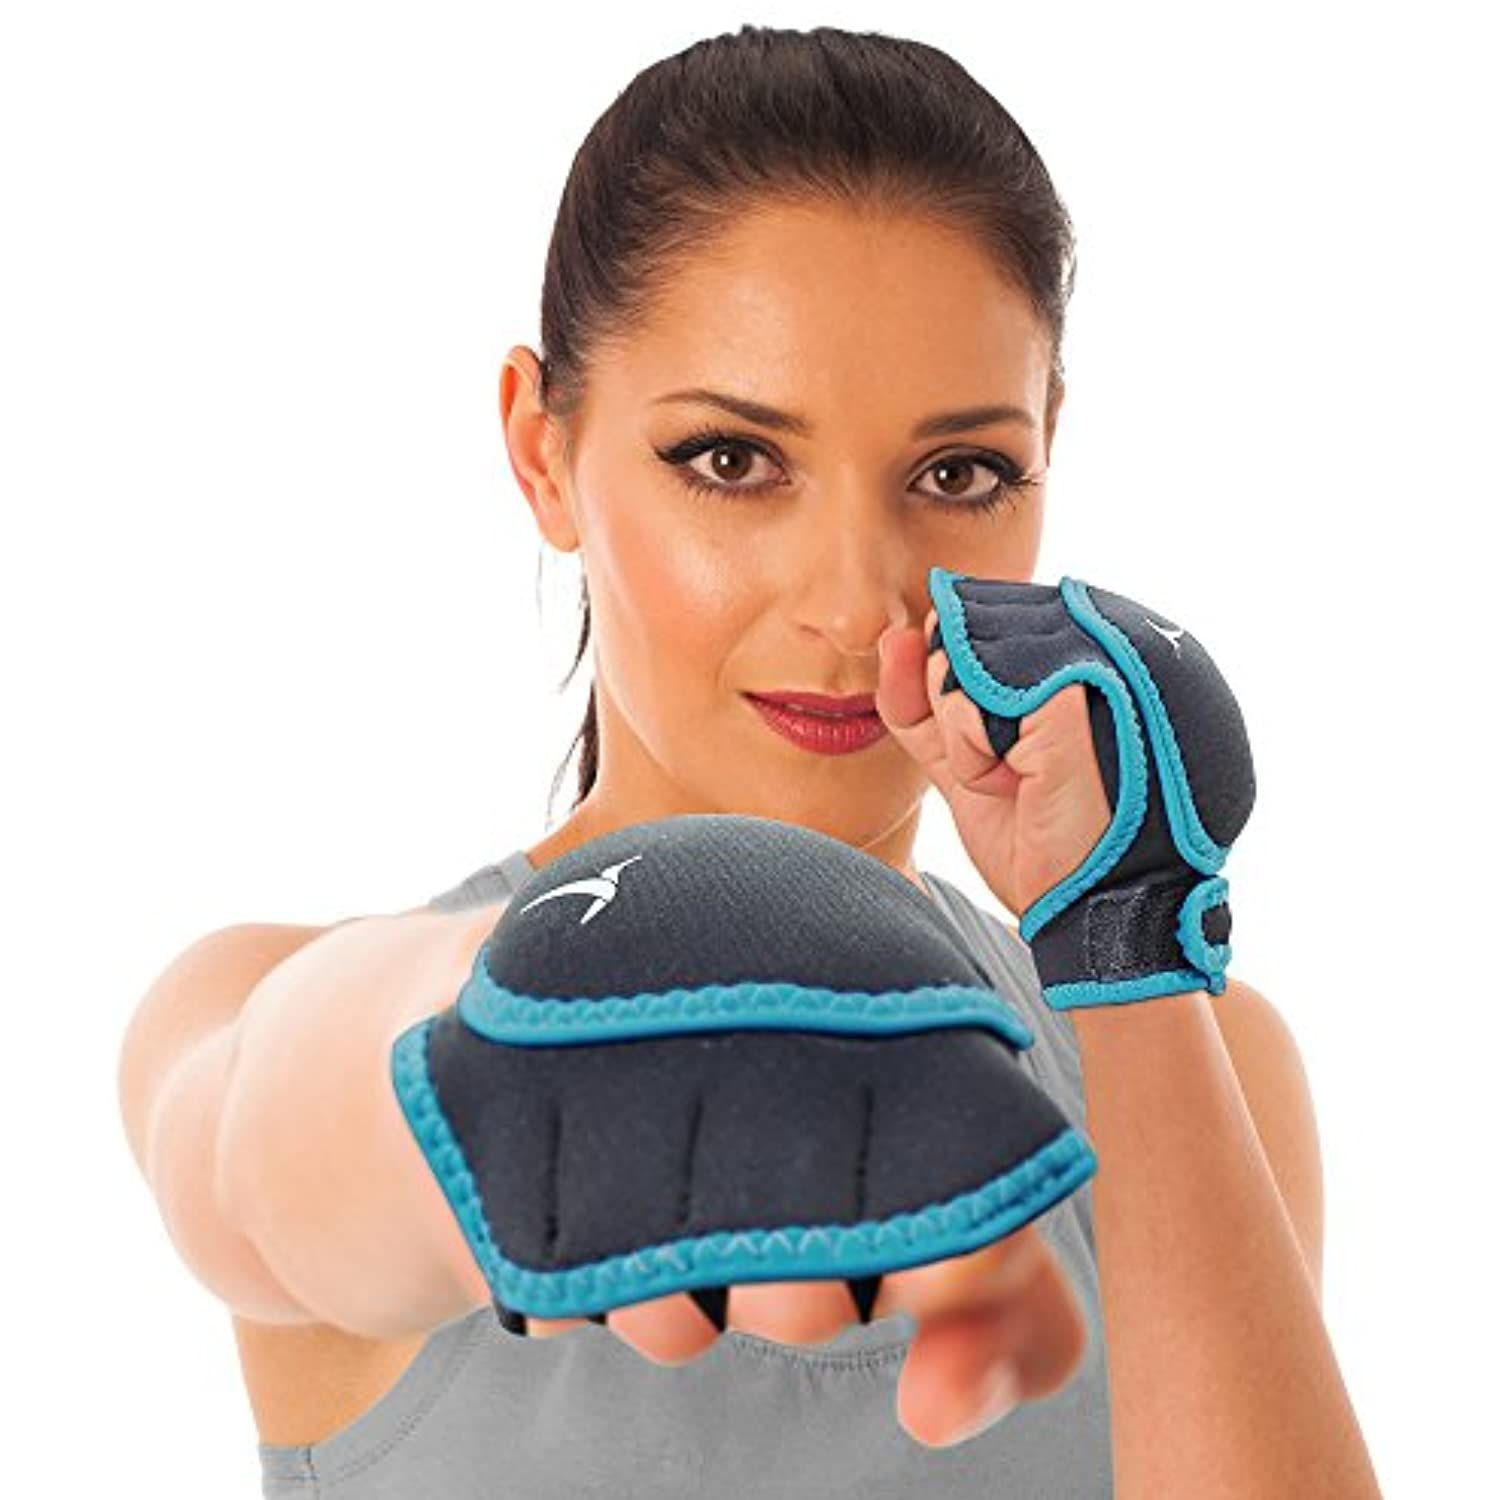 Empower Weighted Gloves for Women, 1 Pound Each Glove Weighted Fitness  Gloves, Kickboxing, Cardio, Workout -- Lea… in 2020 | Workout gloves,  Workout review, Weights workout